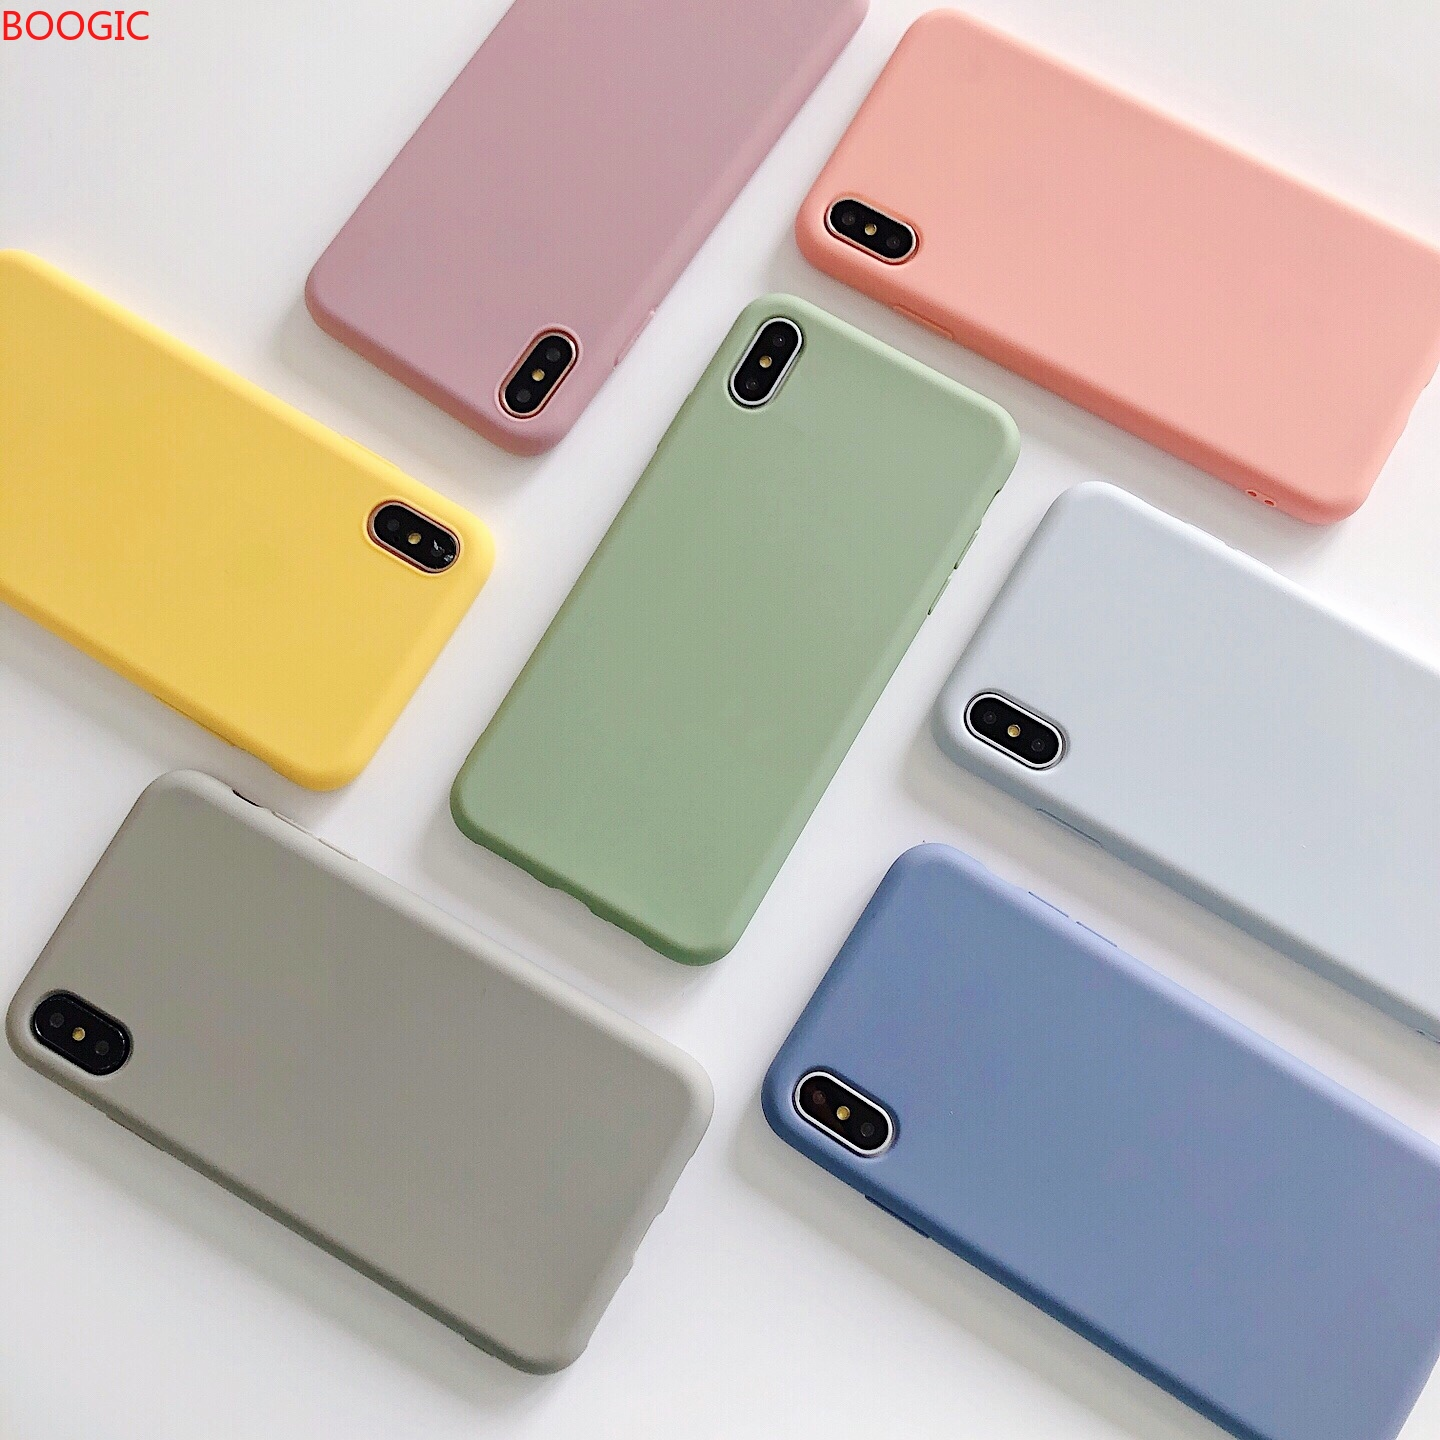 Phone Case For iPhone 7 6 6s 8 X Plus XR XS Max Simple Solid Jelly Color Ultra thin Soft TPU Silicone Full Cover Shockproof Caqa